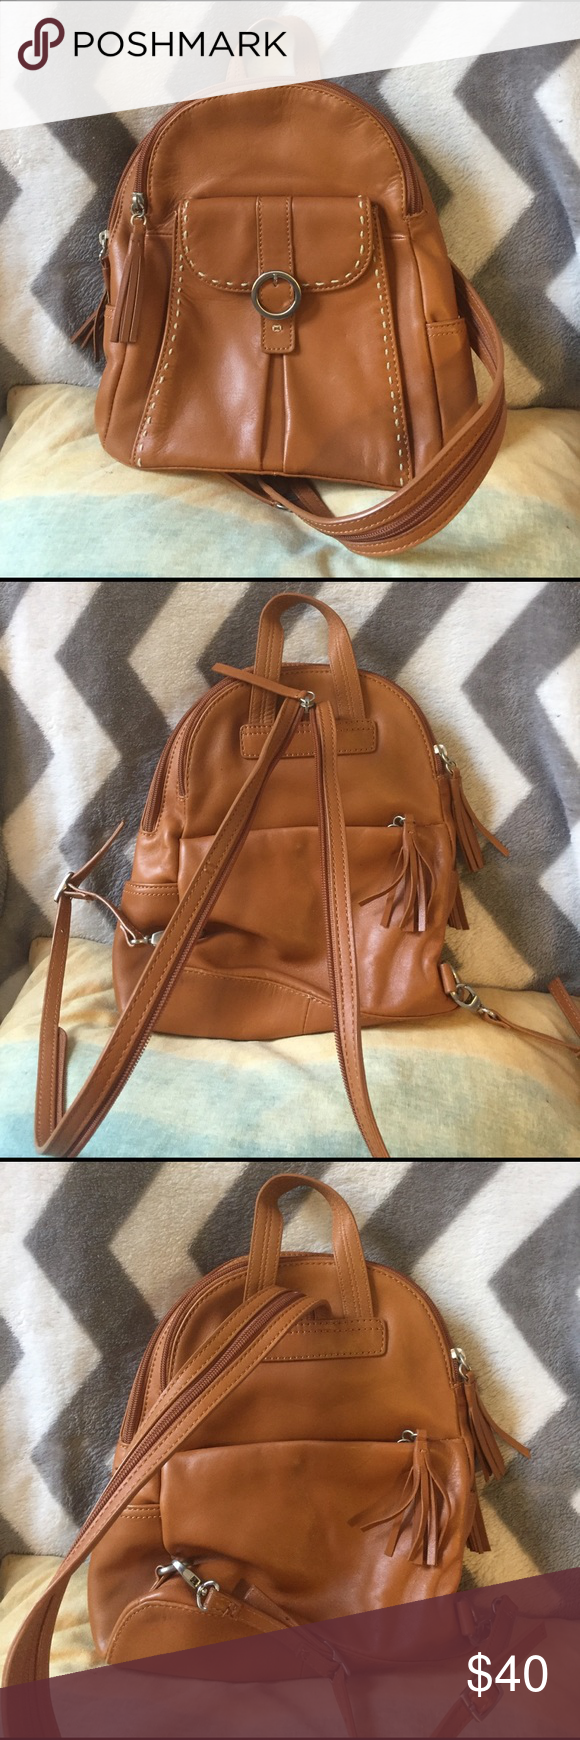 Sigrid Olsen convertible backpack 100% leather. Super cute bag that has a  strap that unzips to become a backpack. 5 separate pockets with a bright  aqua blue ... 3a1d252843